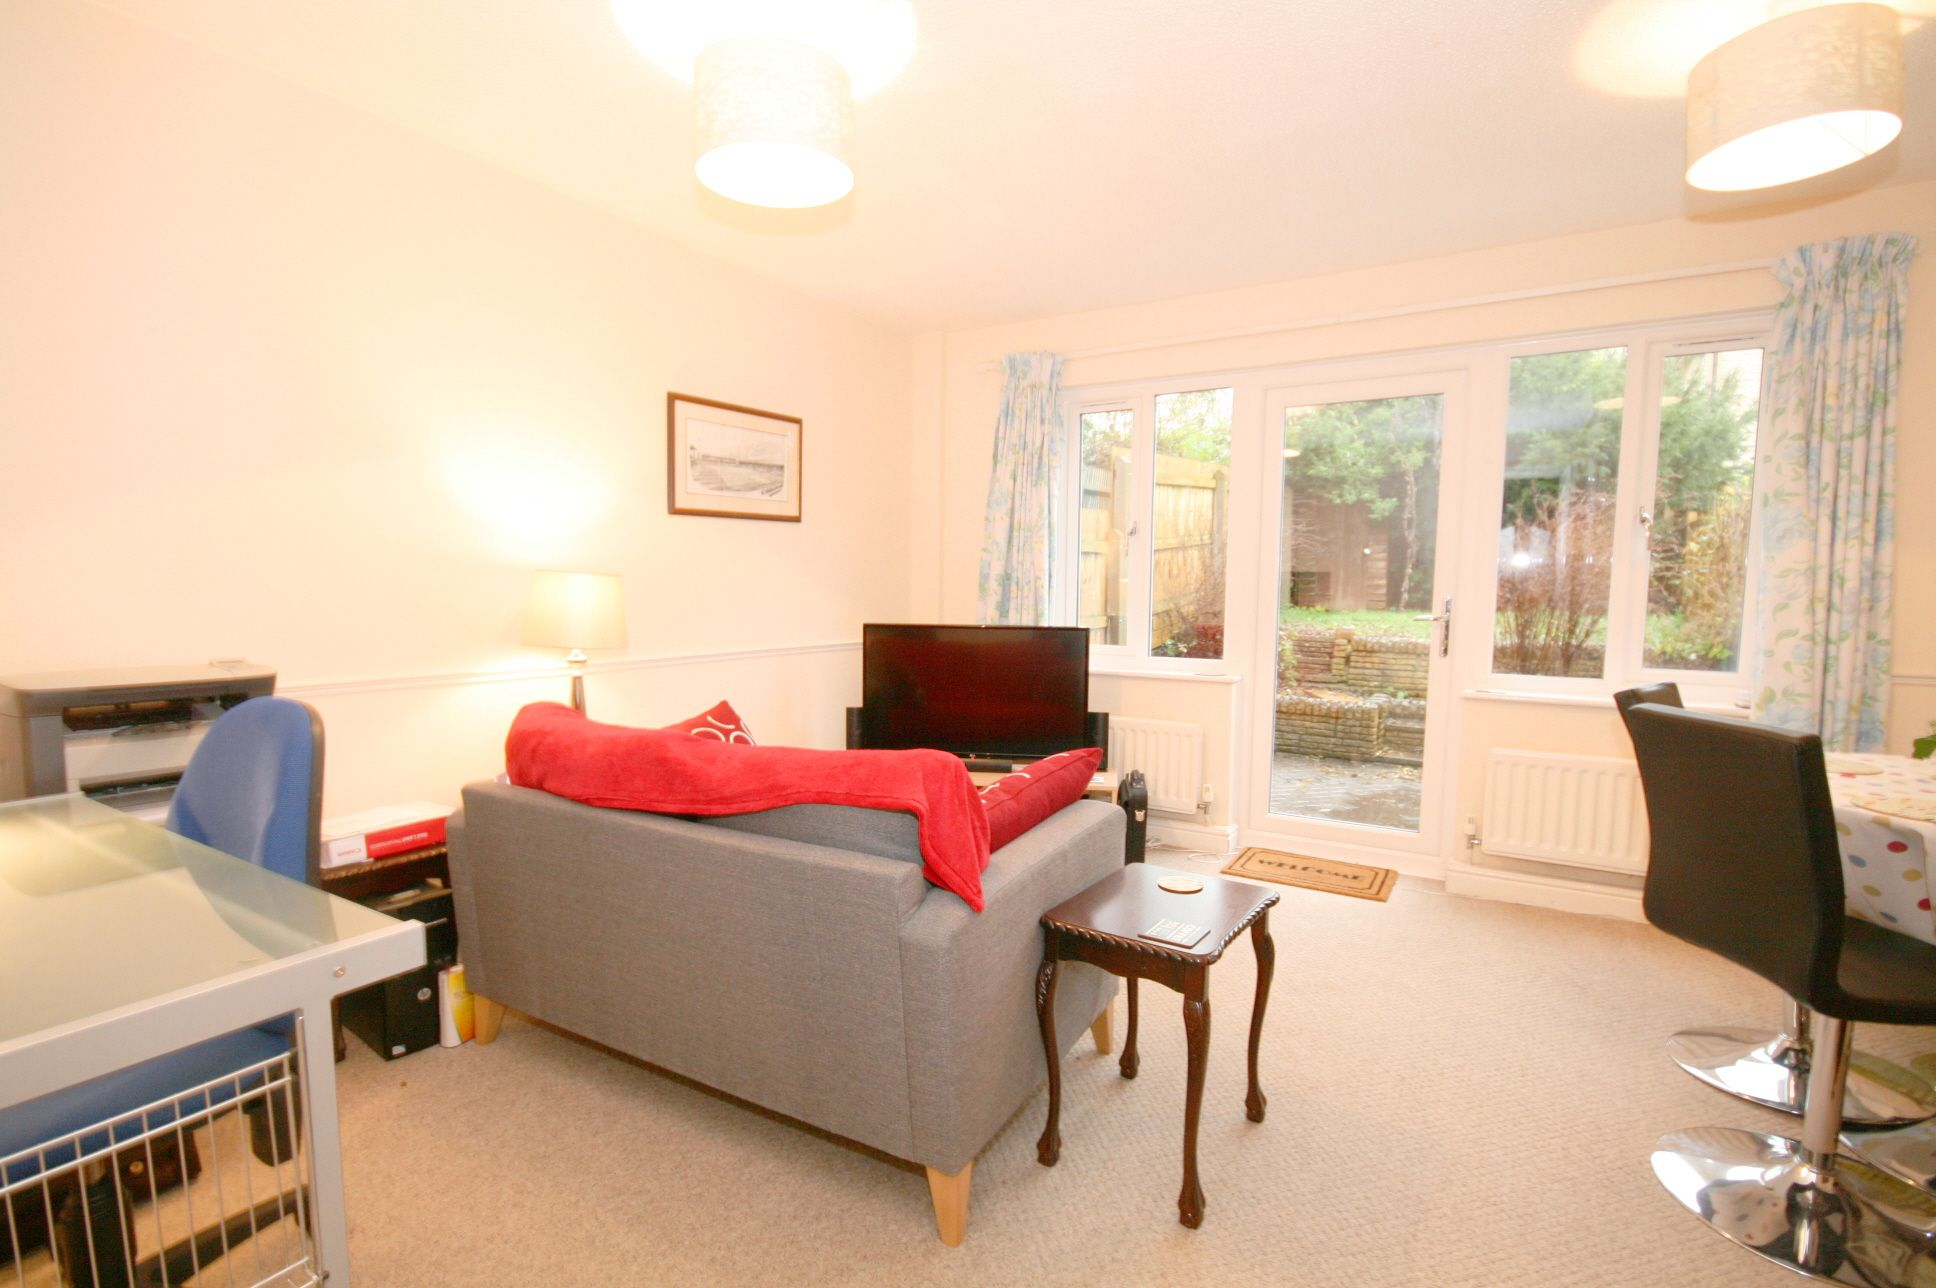 2 Bedroom End Terraced House For Sale - Sitting room